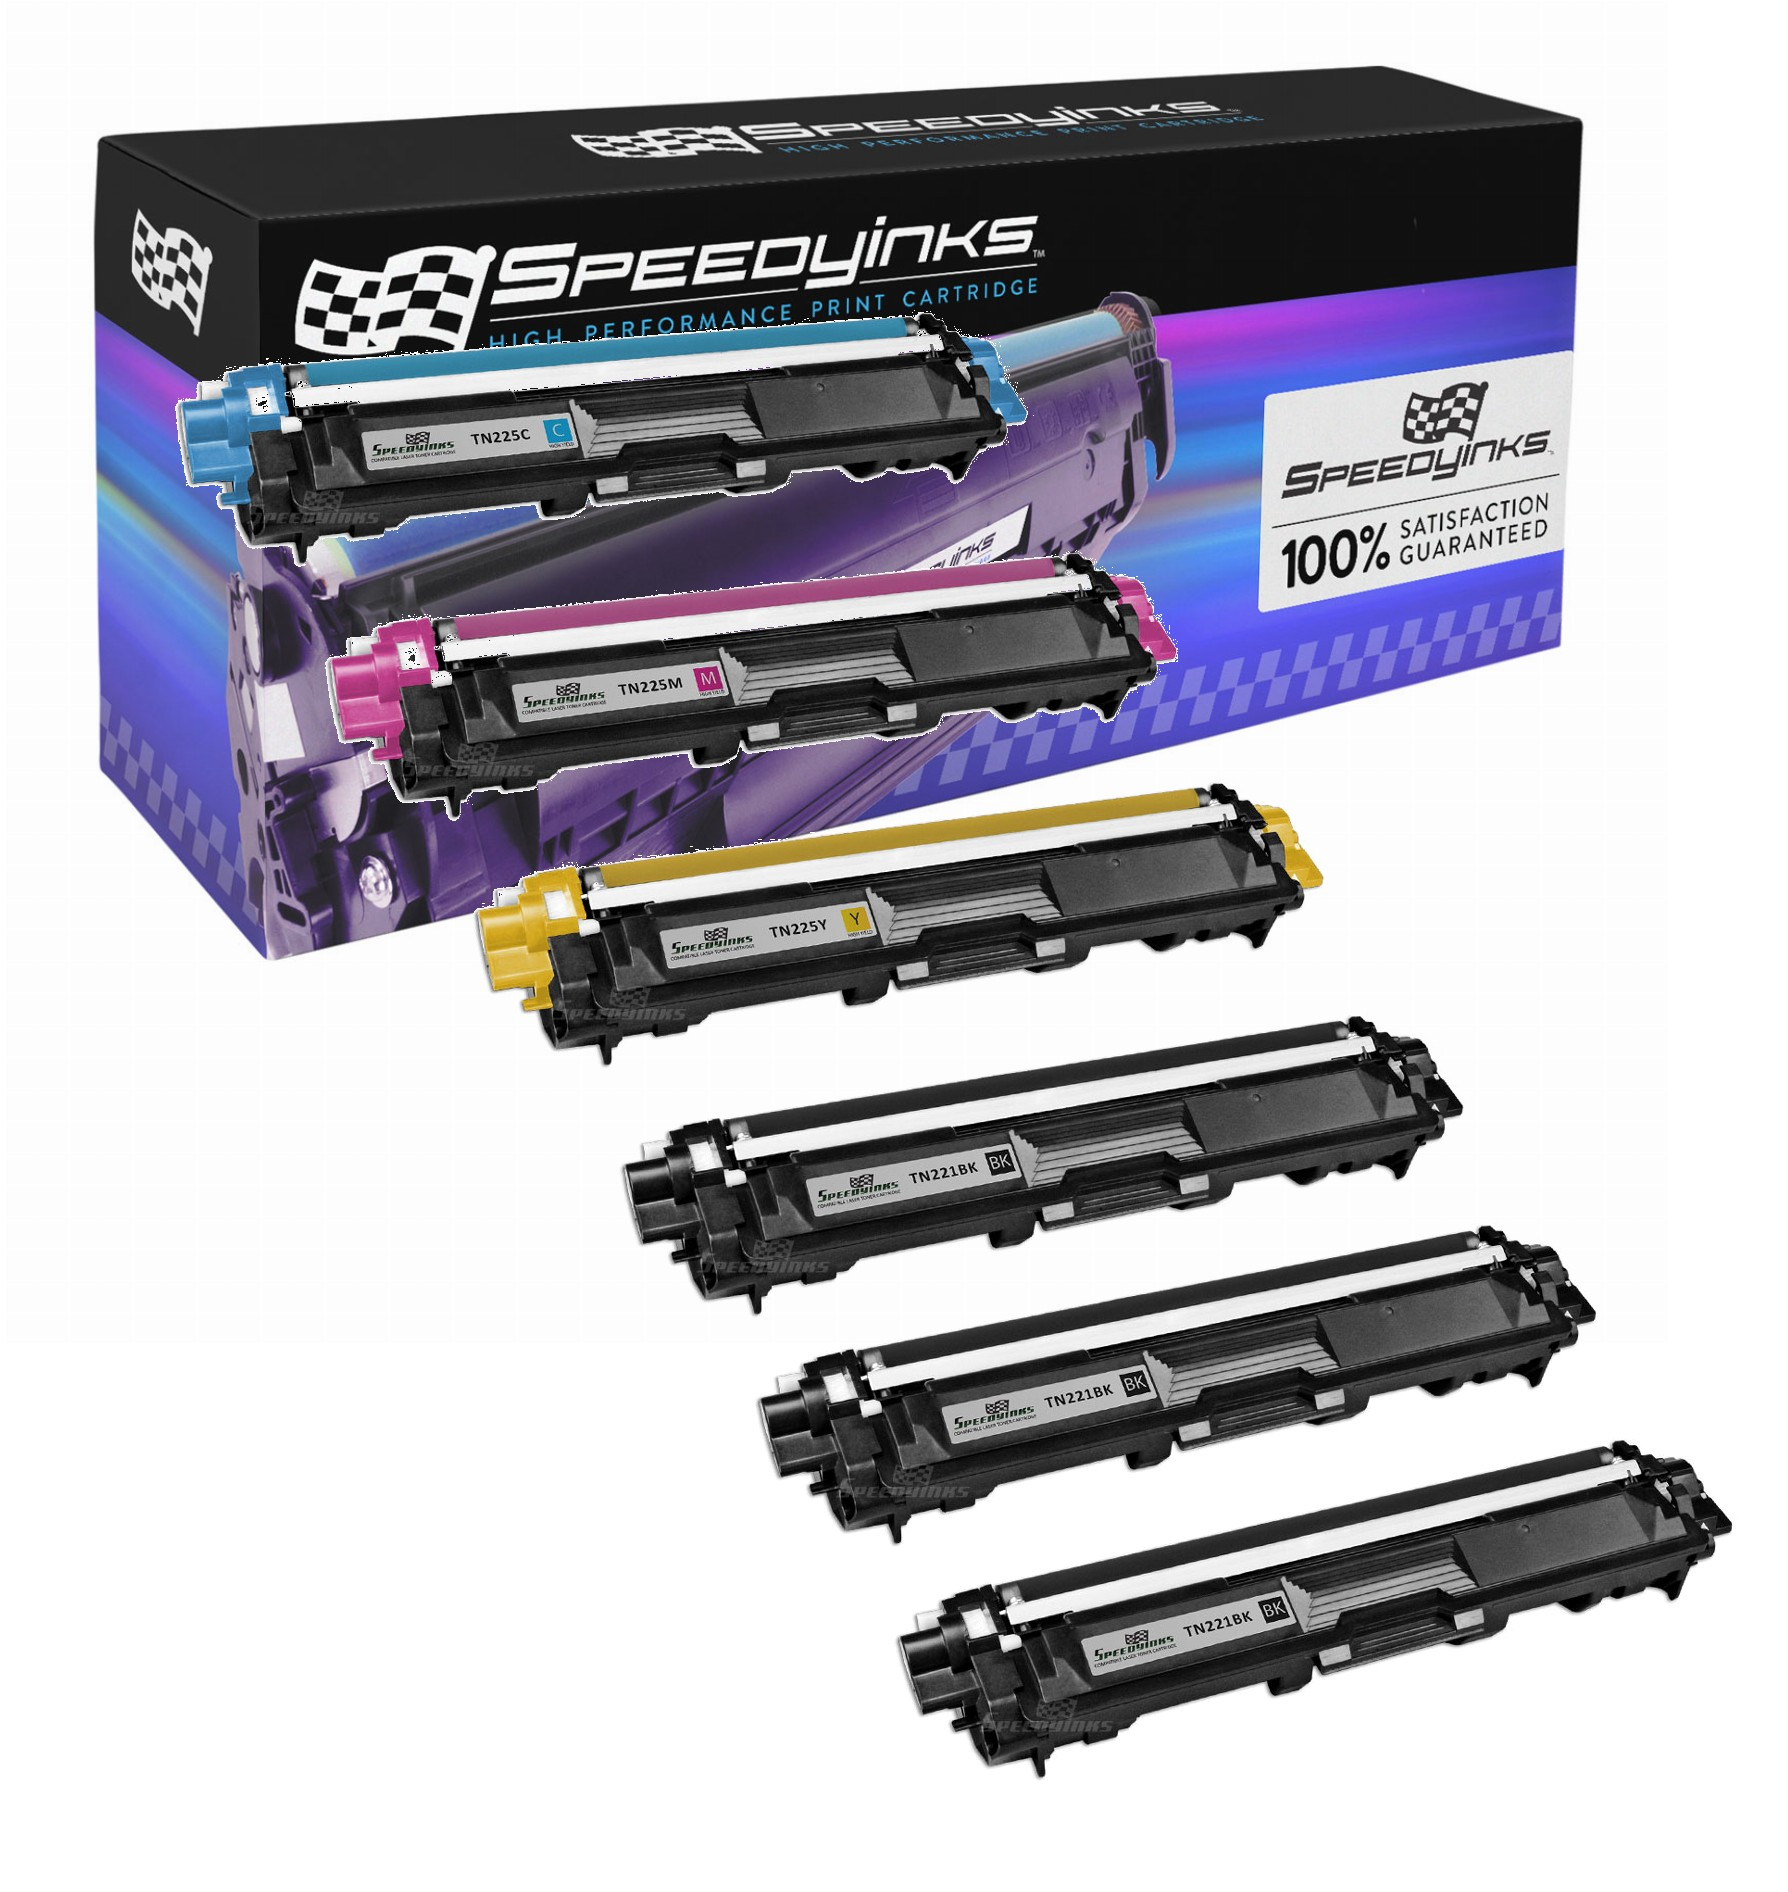 SpeedyInks - Brother Compatible TN221 / TN225 Toner Cartridge 3 Black TN221BK, 1x Cyan TN225C, 1 Yellow TN225Y, 1 Magenta TN225M for HL-3140CW, HL-3170CDW, MFC-9130CW, MFC-9330CDW & MFC-9340CDW